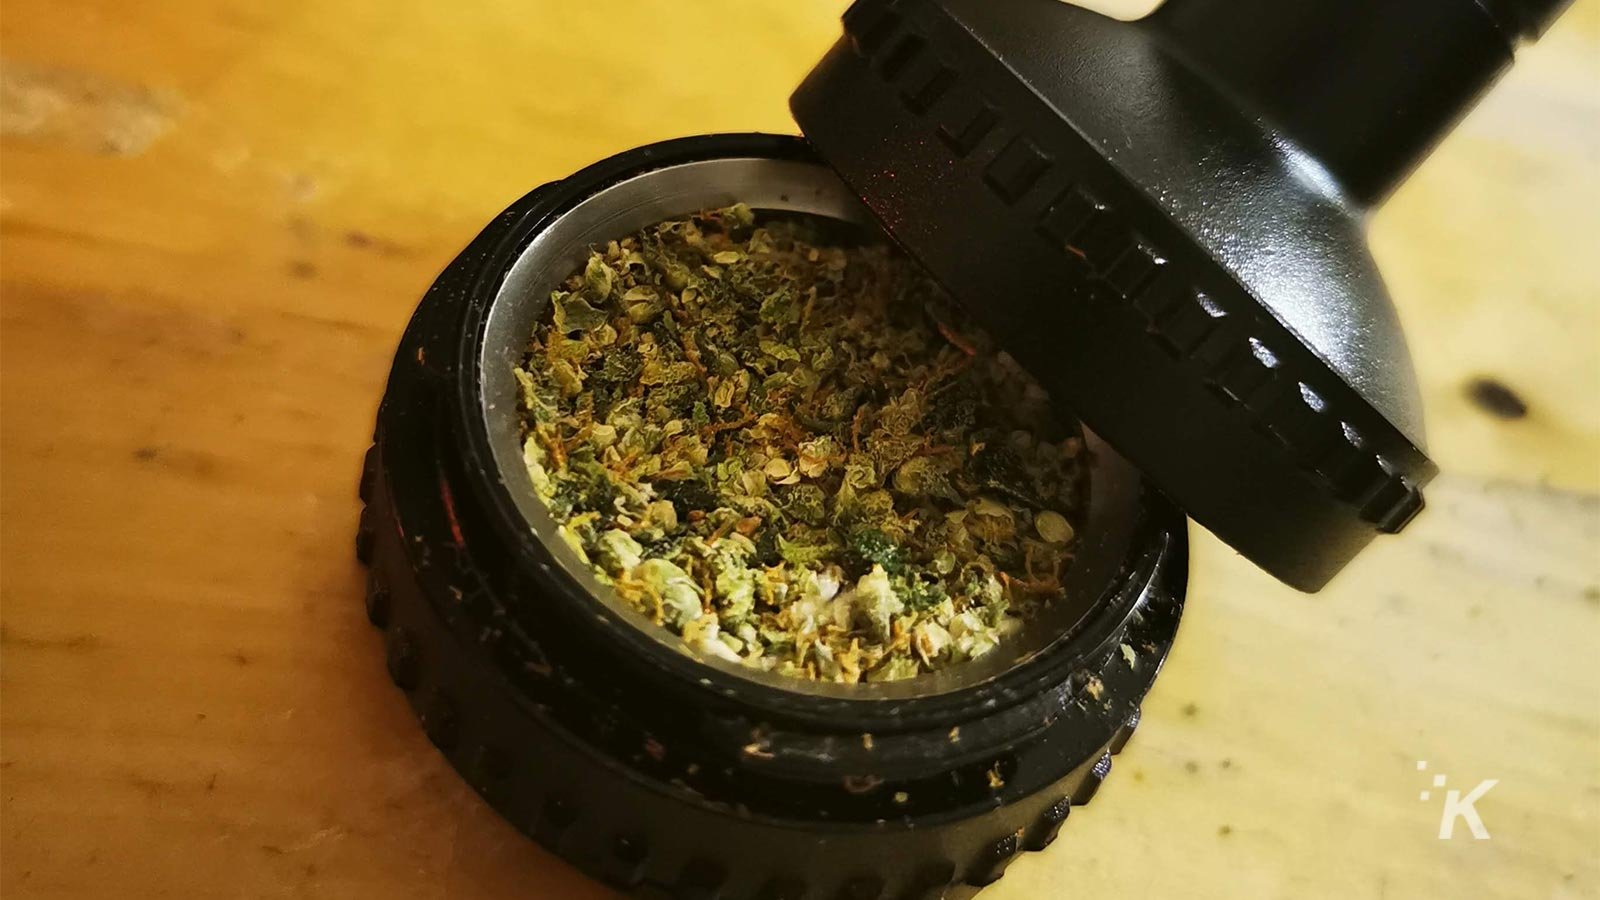 volcano chamber filled with weed